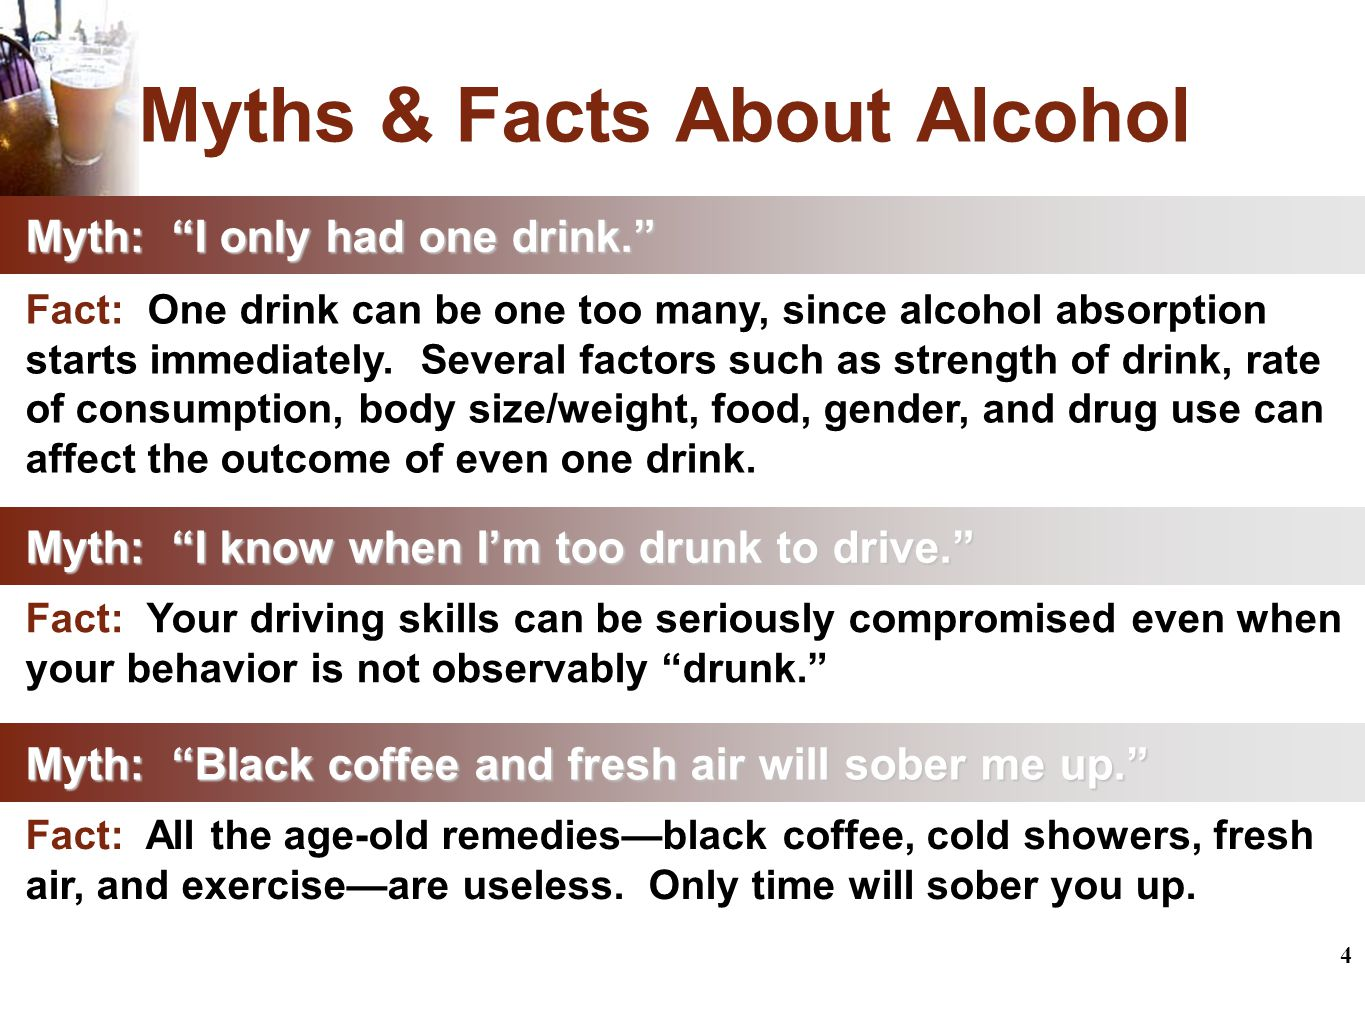 4 Myths & Facts About Alcohol Myth: I know when I'm too drunk to drive. Fact: Your driving skills can be seriously compromised even when your behavior is not observably drunk. Myth: I only had one drink. Fact: One drink can be one too many, since alcohol absorption starts immediately.